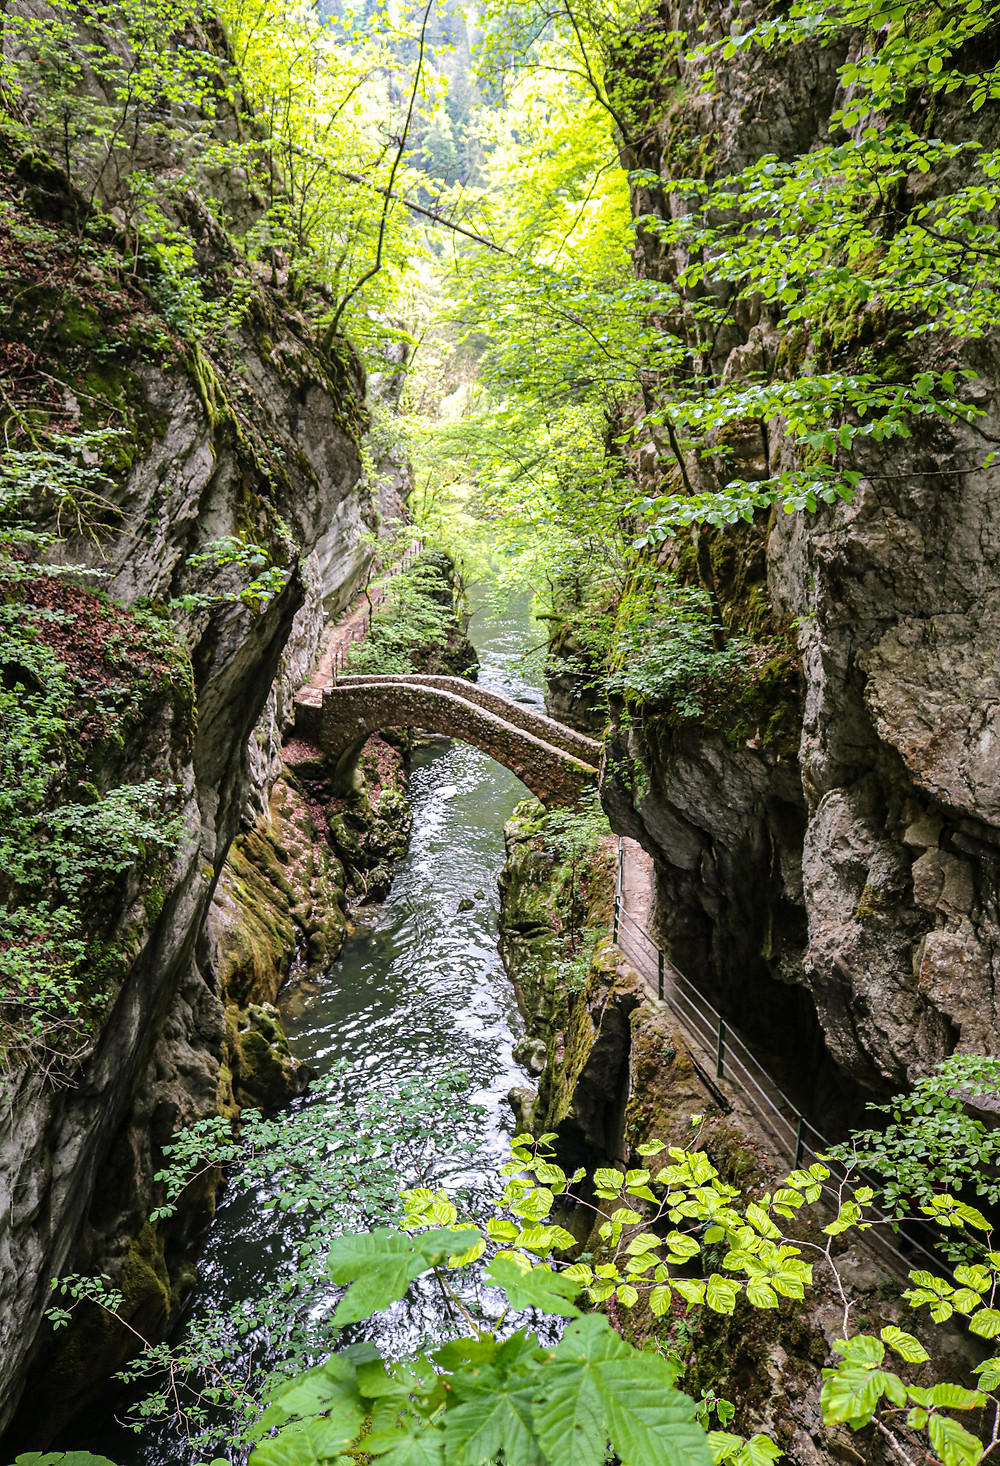 Gorges de l'Areuse stone bridge river crossing